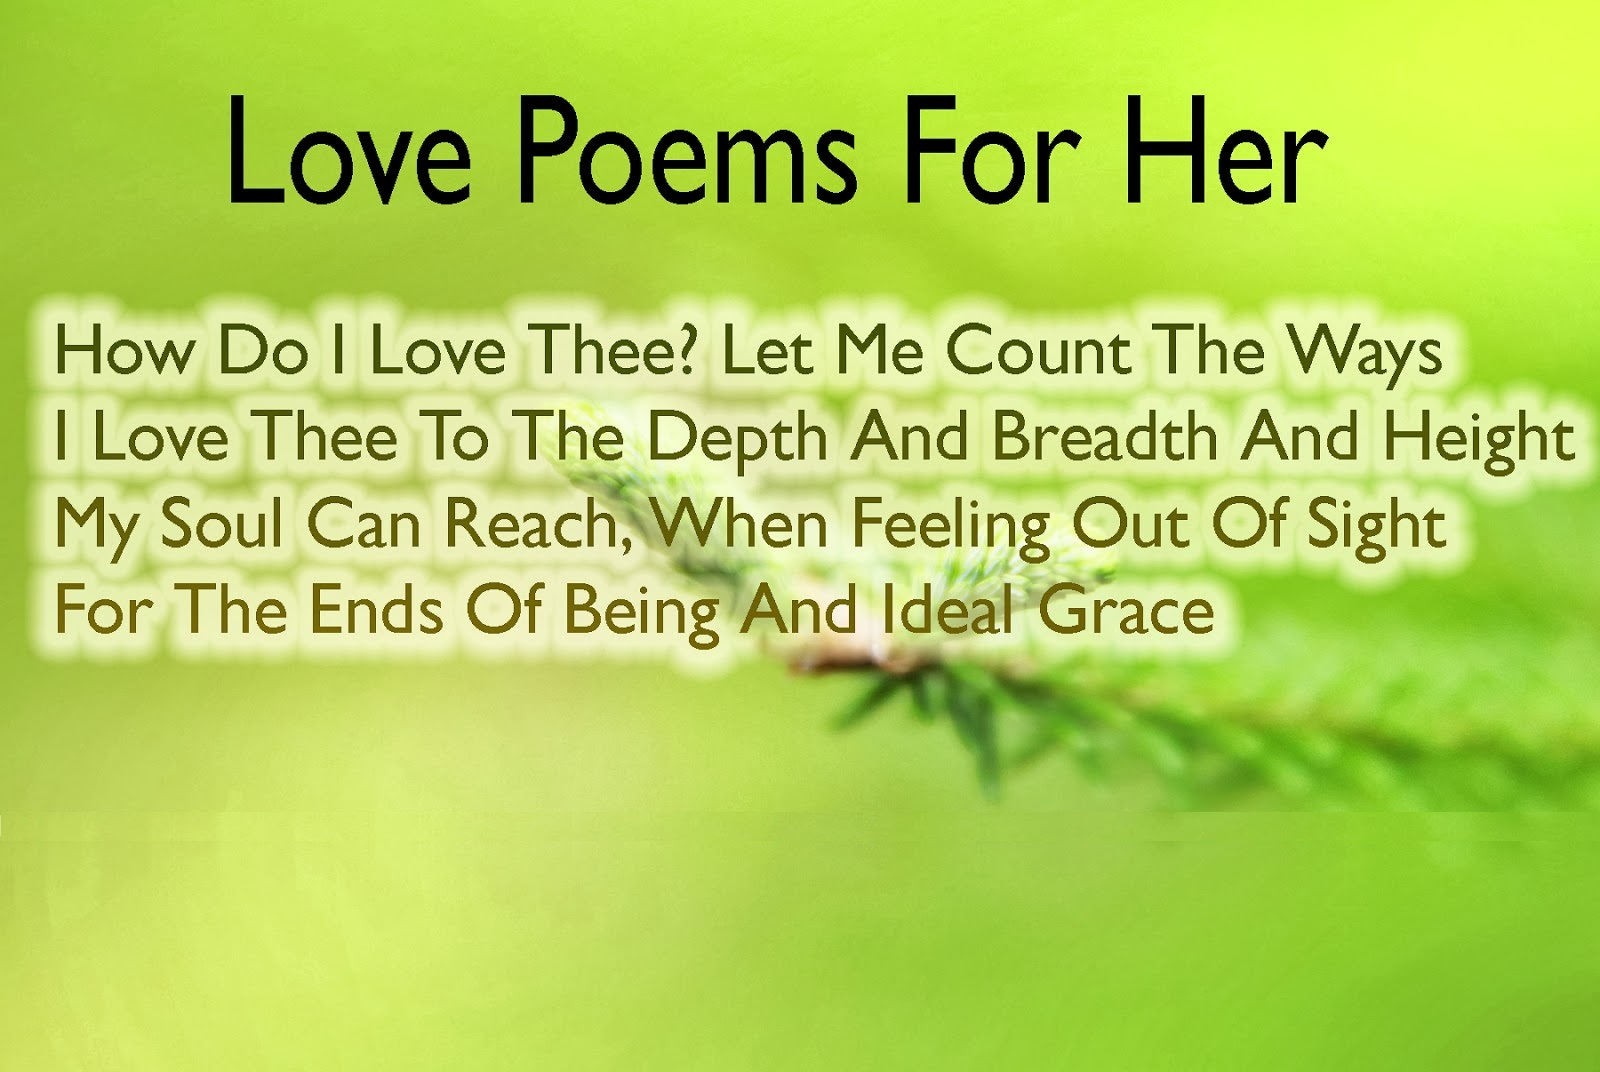 Romance Love Poems For Her 22 Free Hd Wallpaper - Hdlovewall com